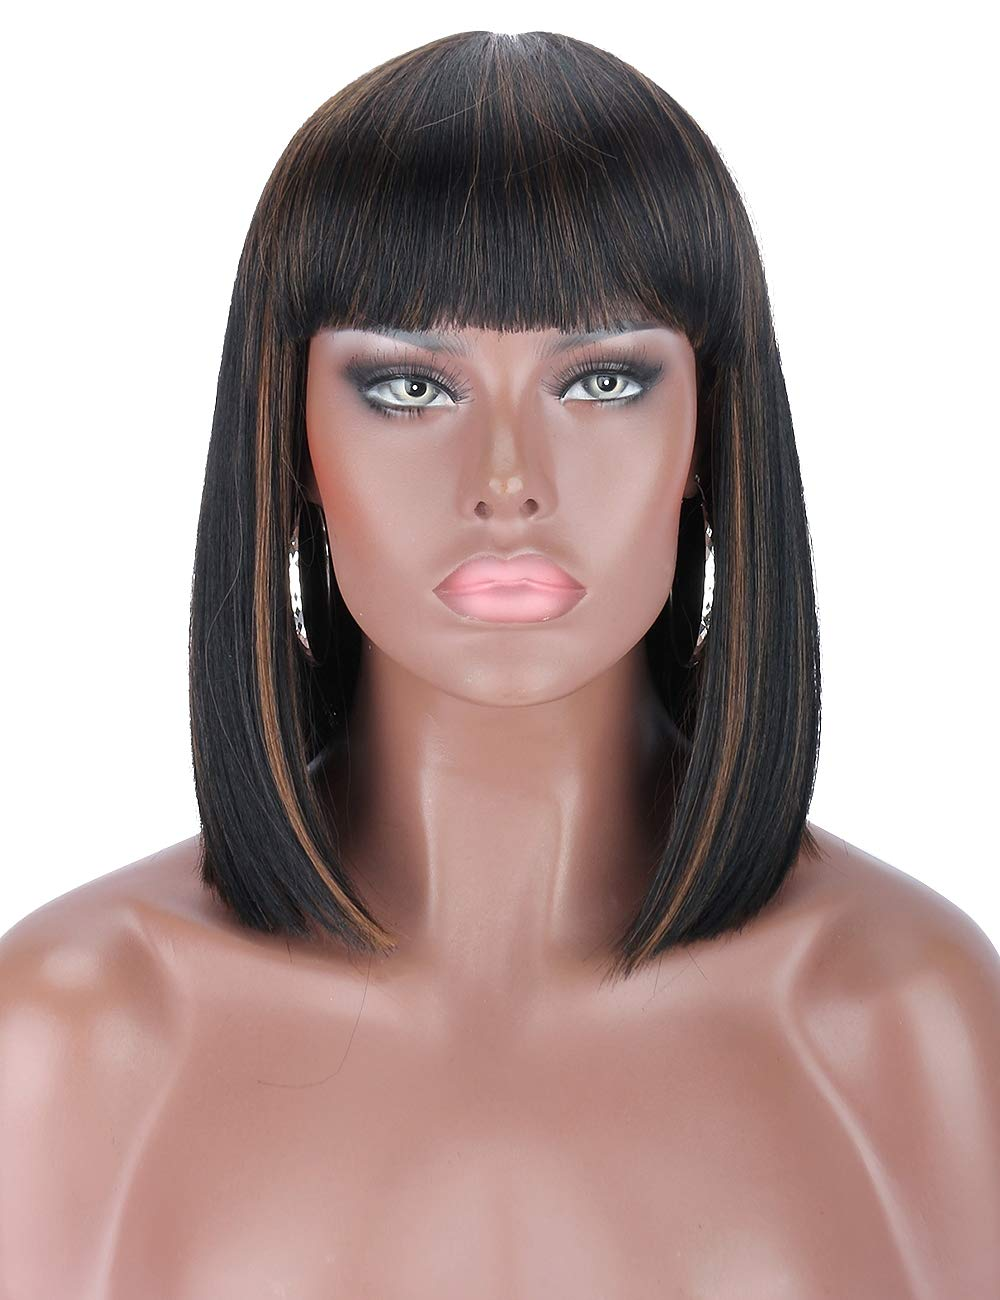 Kalyss Women's Short Bob Wigs with Hair Bangs Black Wigs with Highlights Heat Resistant Yaki Synthetic Straight Full Head Hair Wig for Women, Natural Looking for Daily Wear